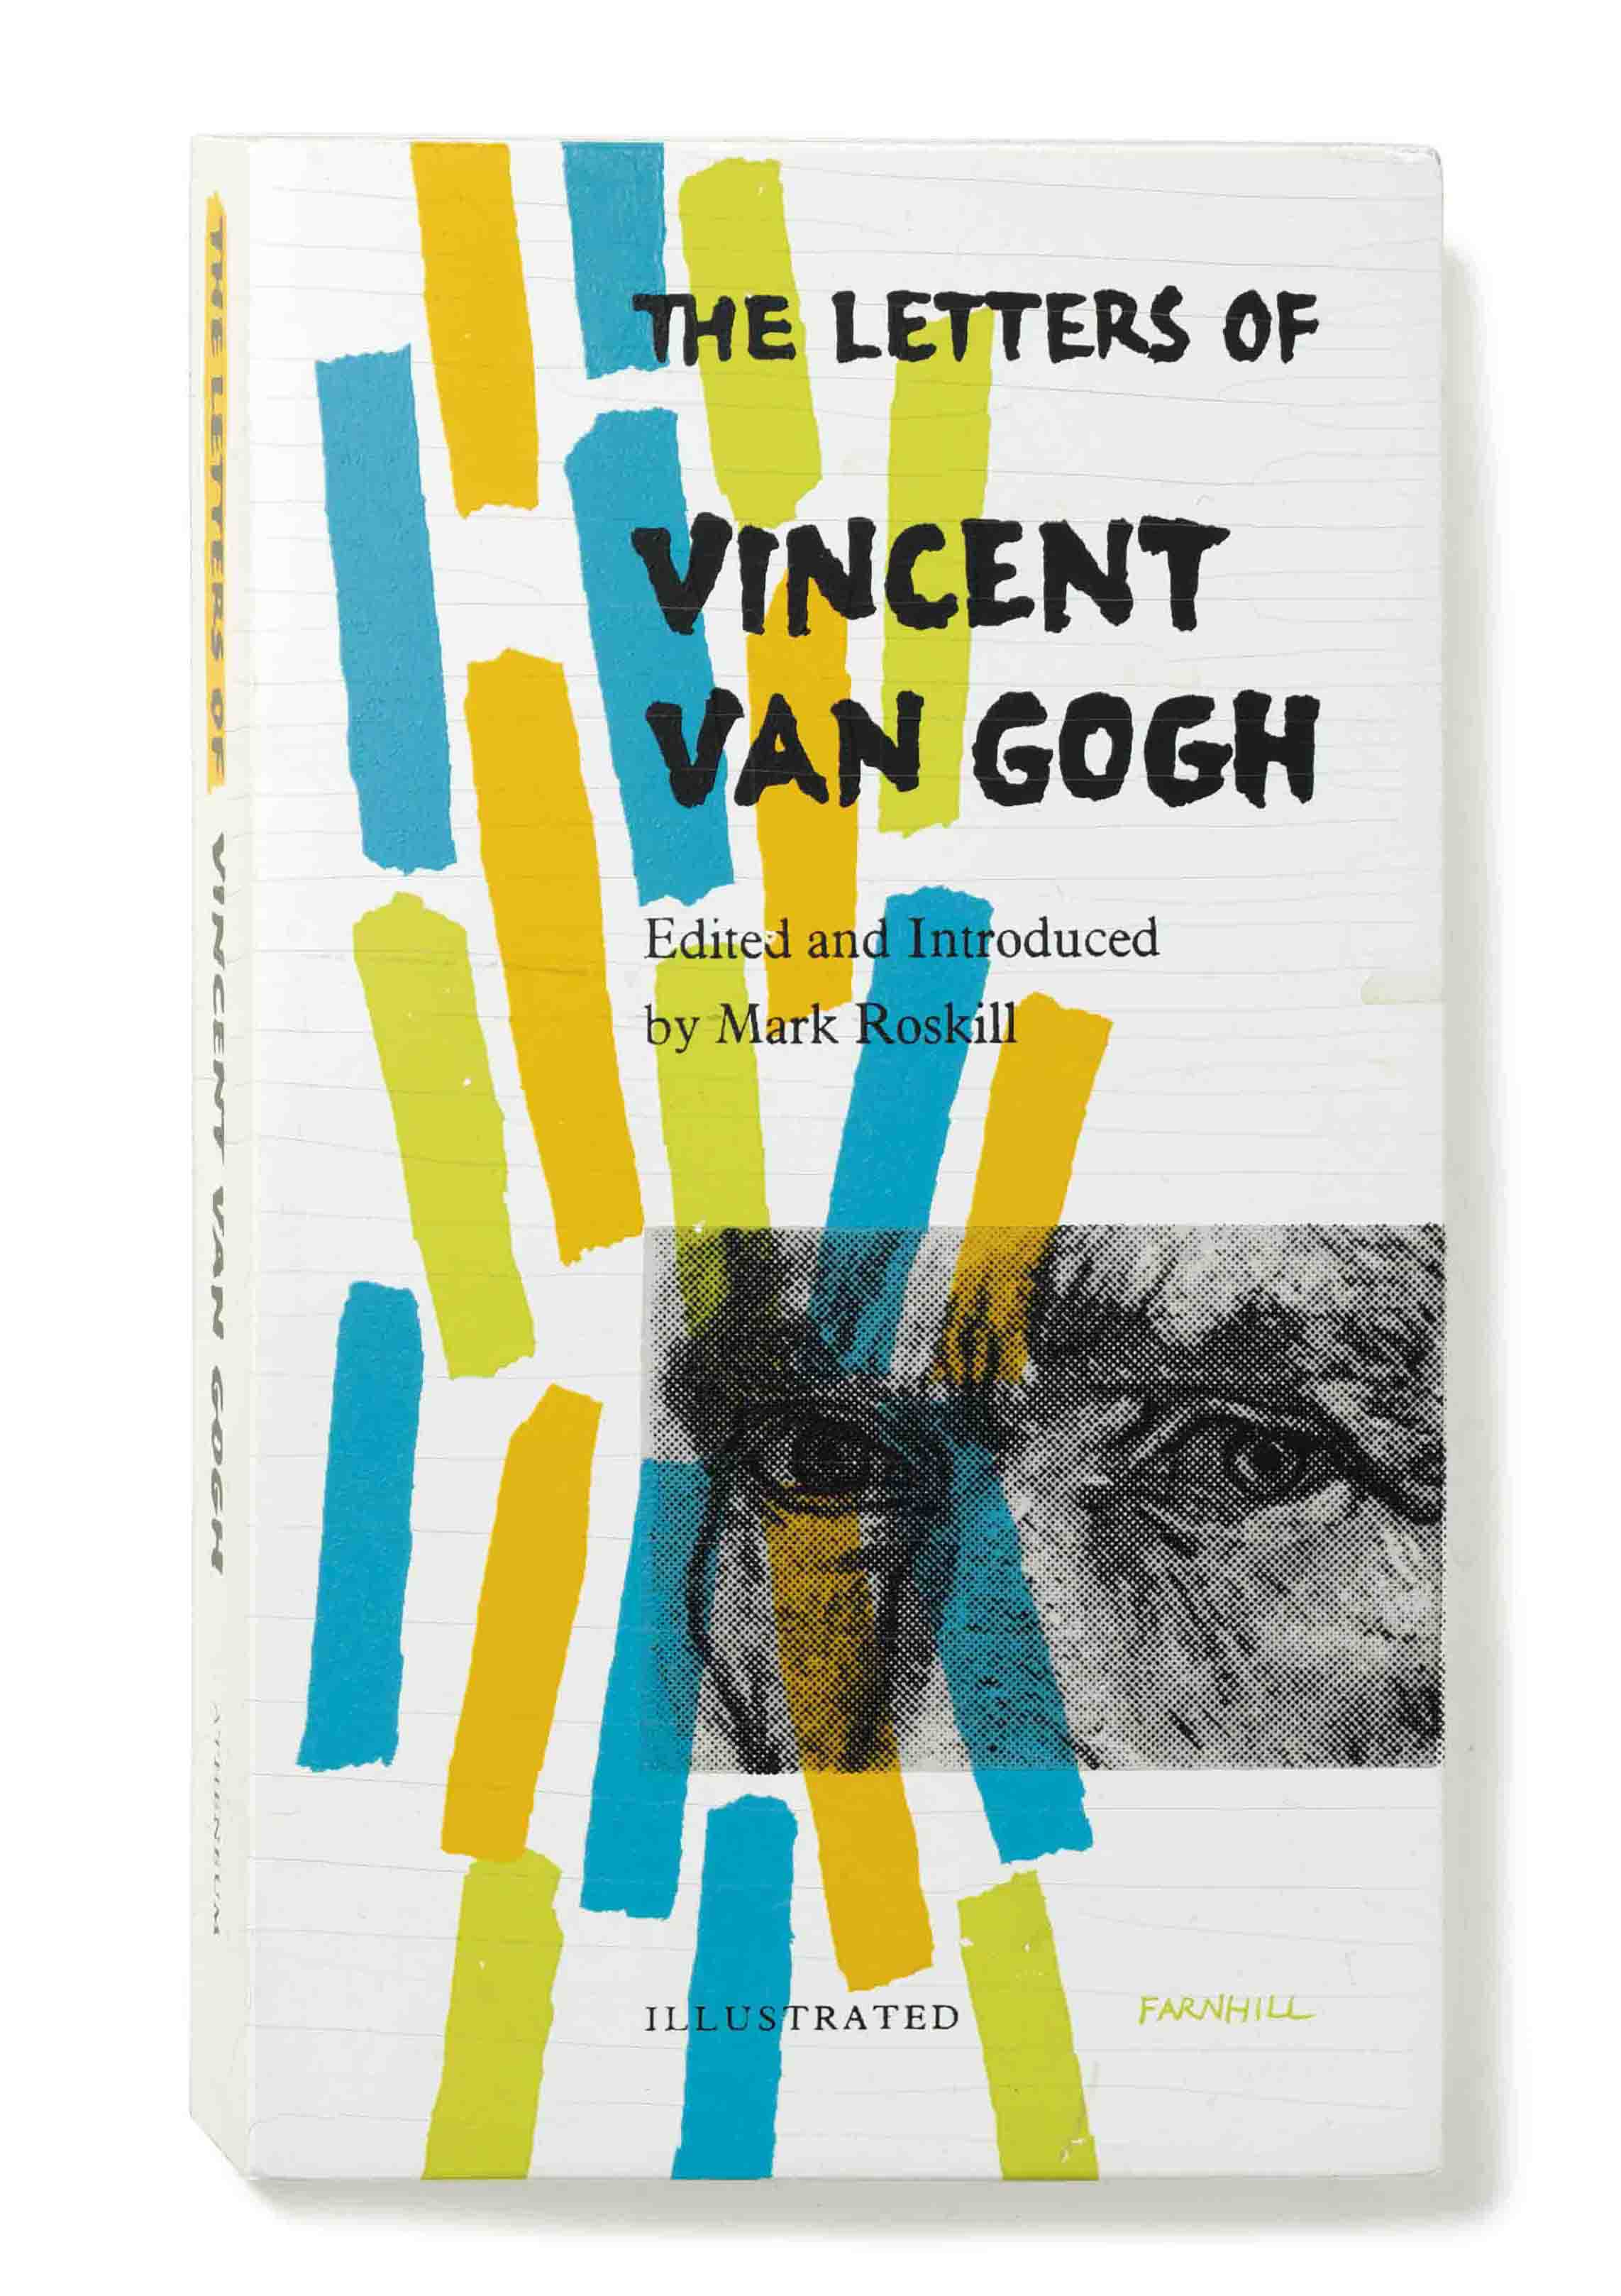 Untitled (The Letters of Vincent van Gogh)